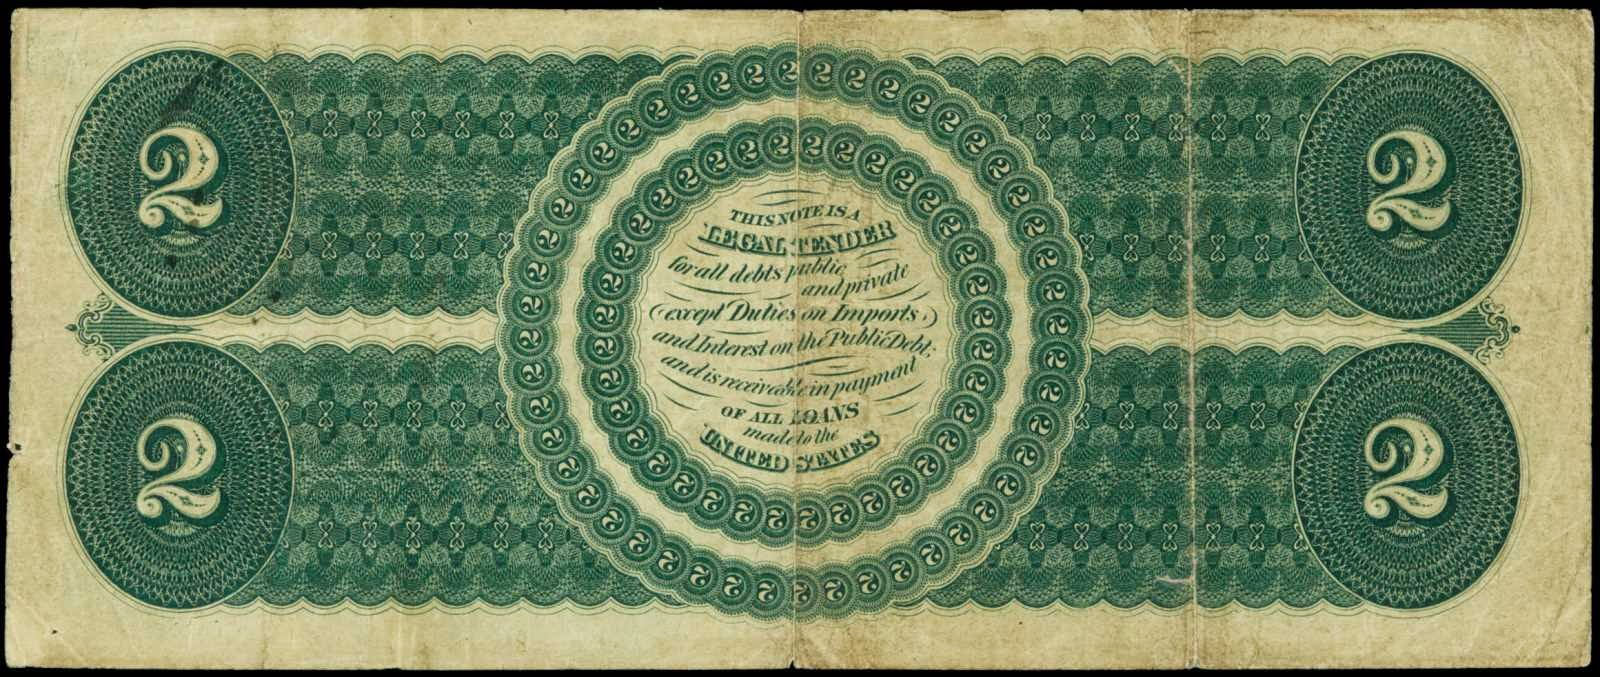 Two Dollar Bill from 1862